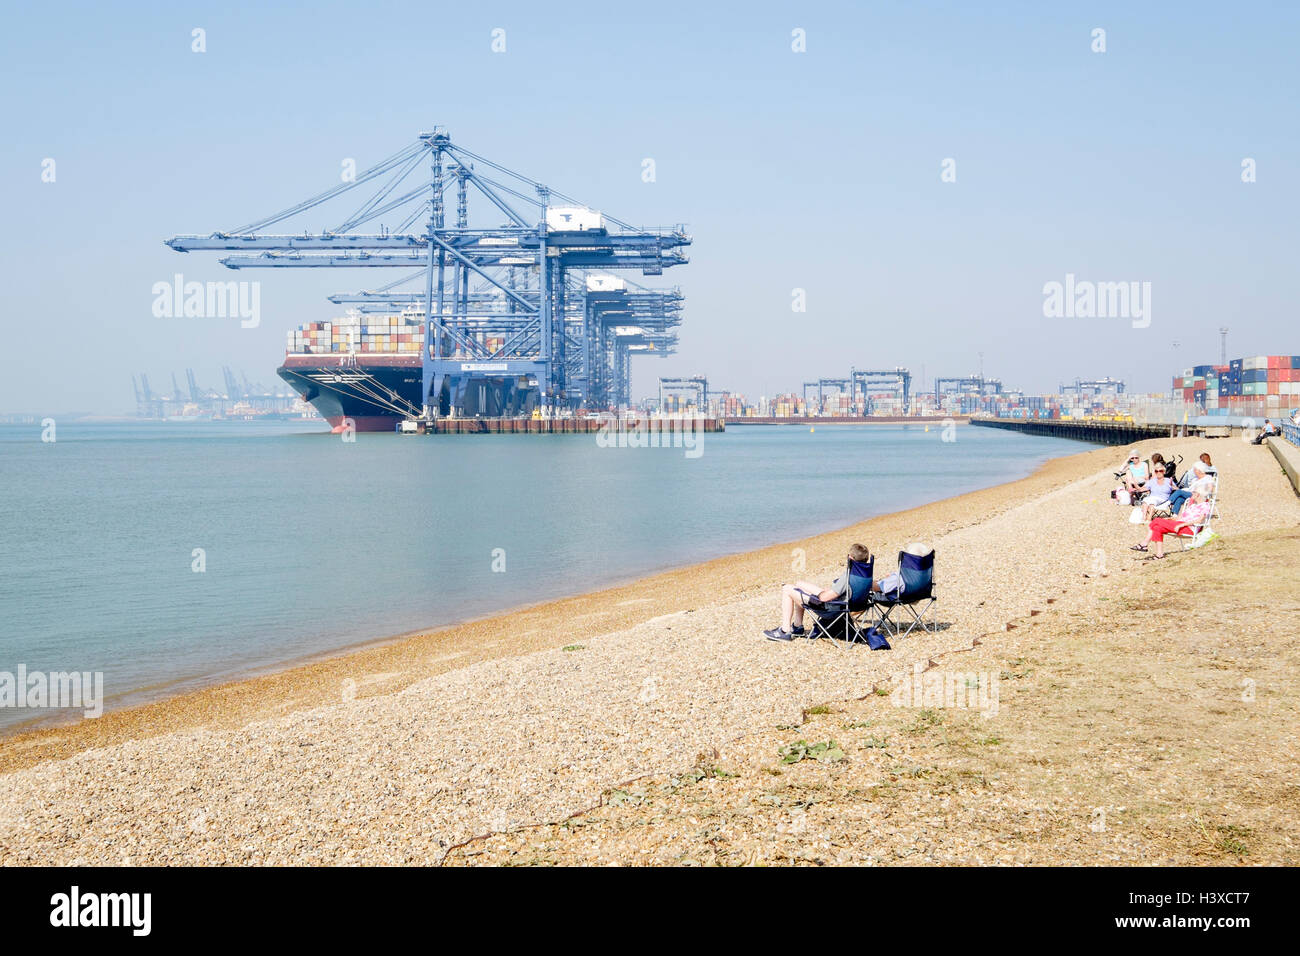 Sunbathers relax on the beach. MSC Venice container ship anchored in the port of Felixstowe, Suffolk, UK in the - Stock Image